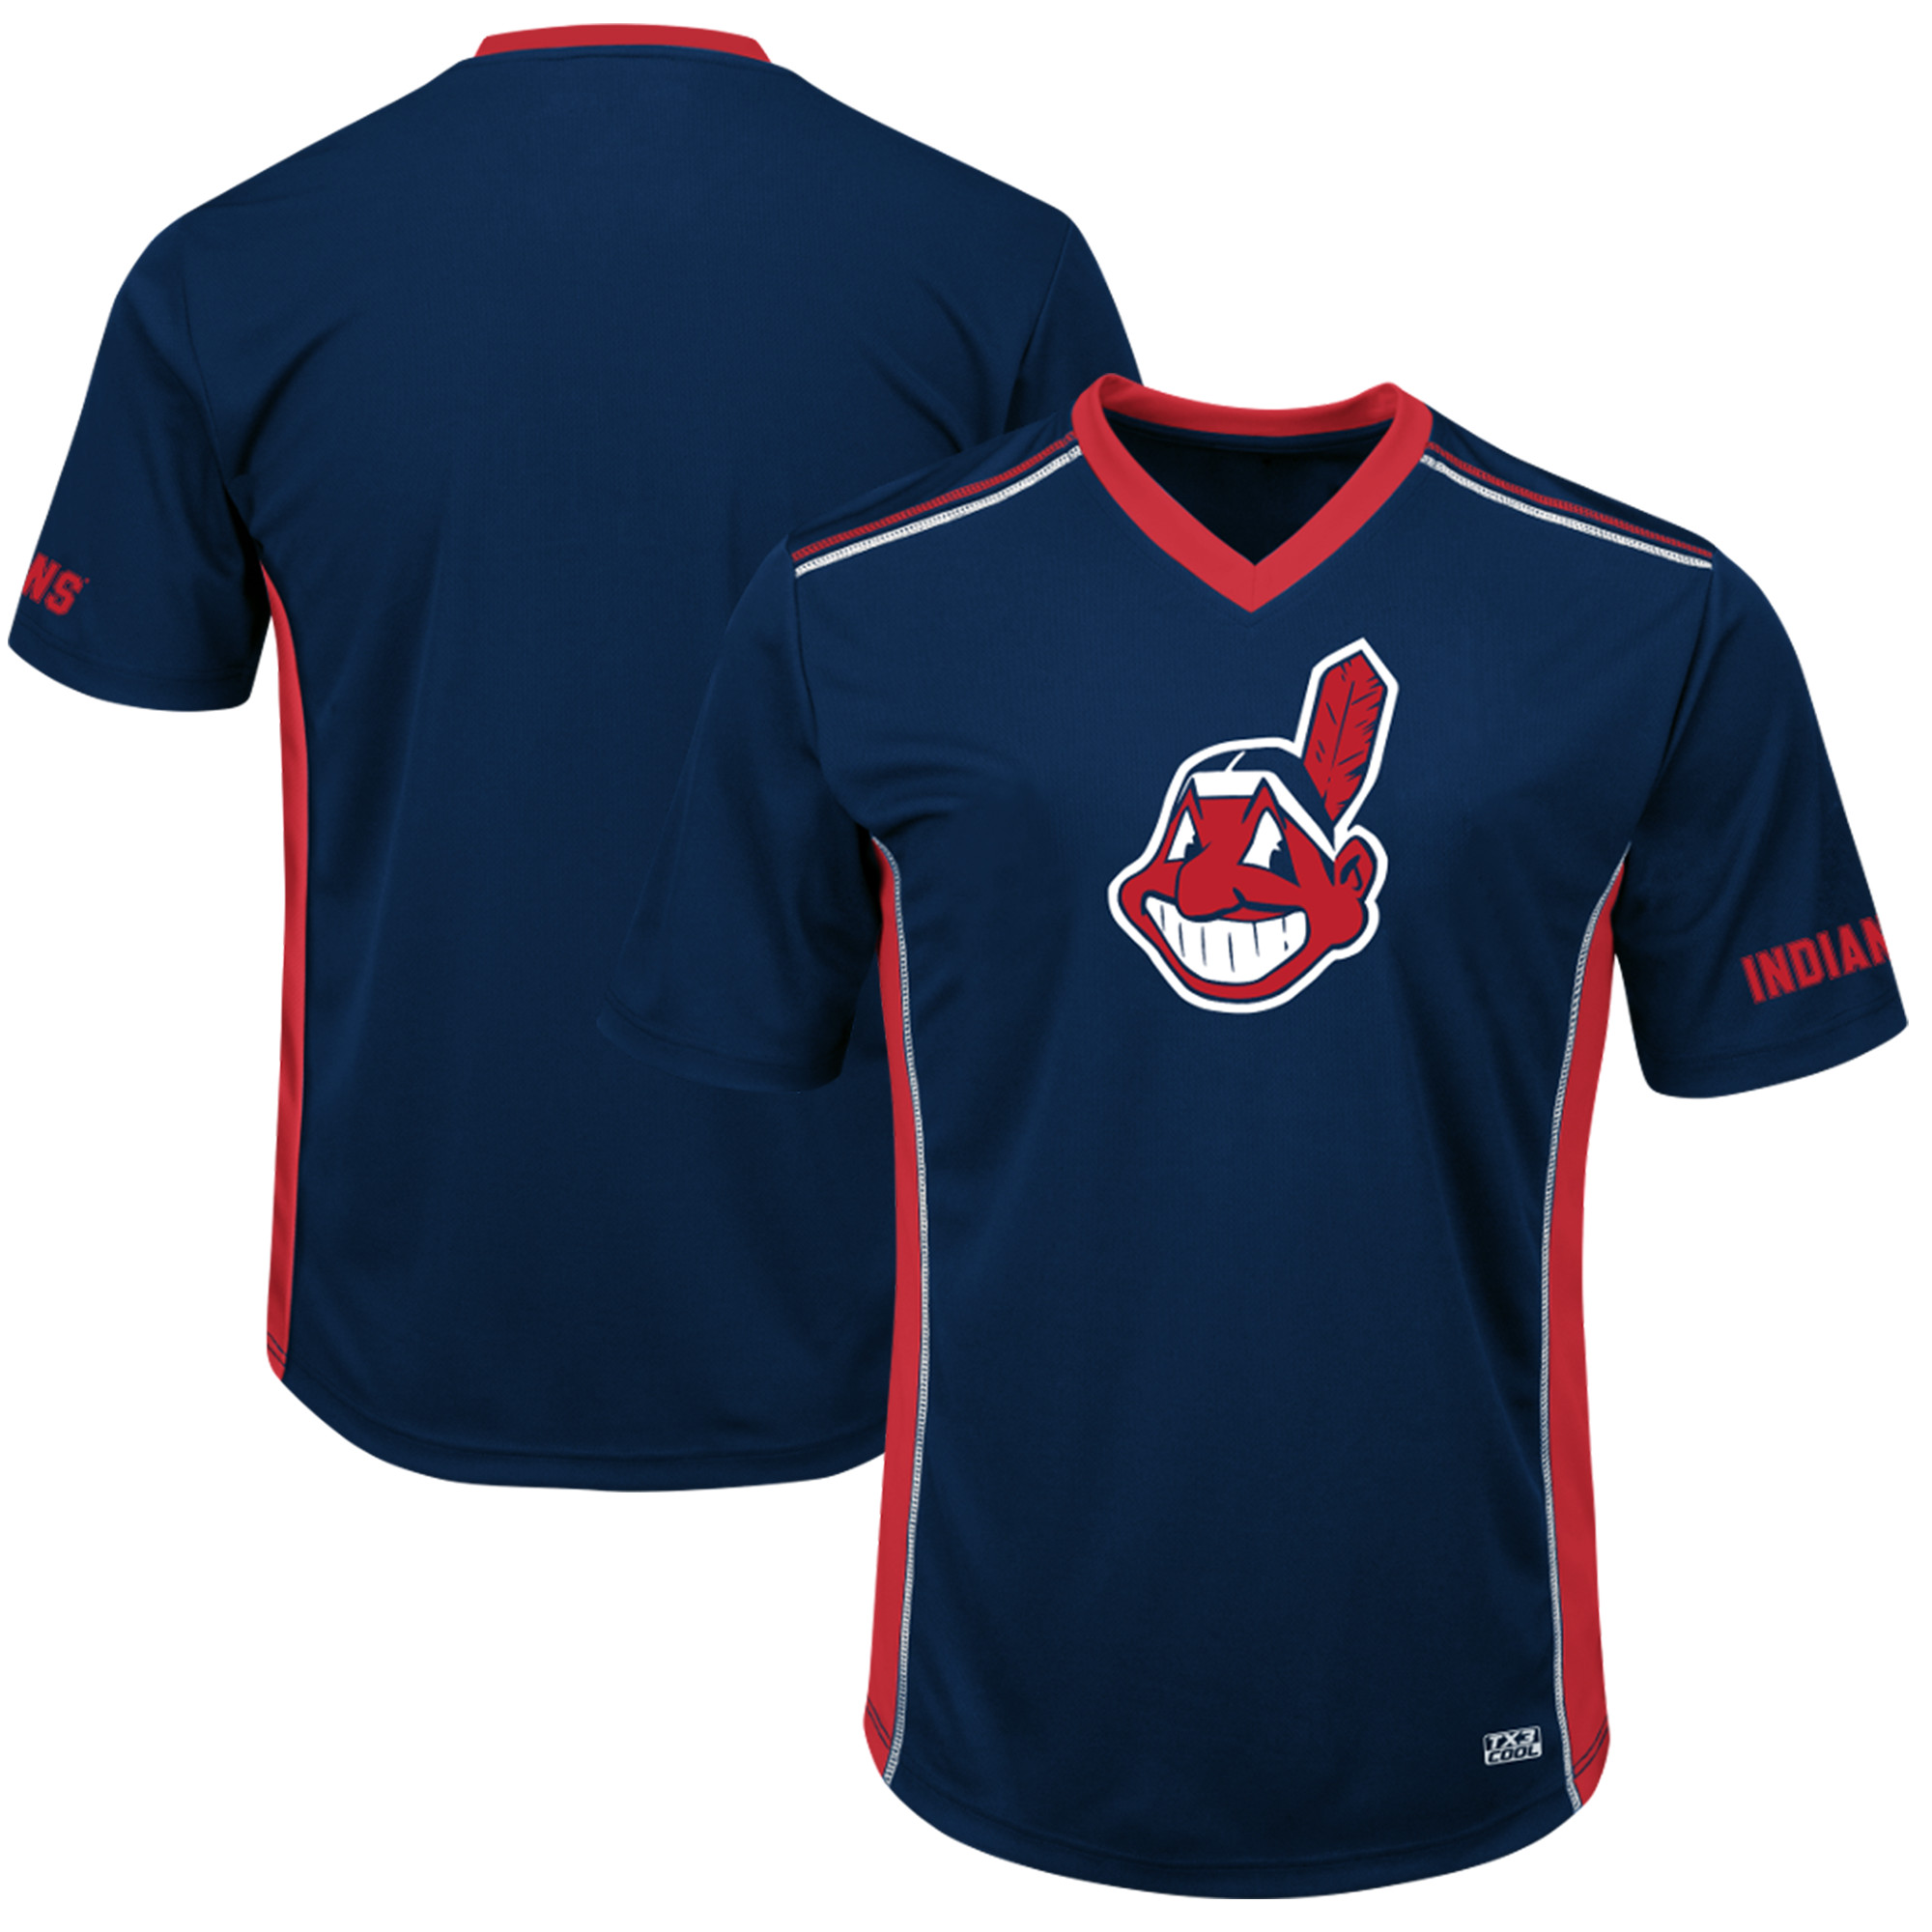 Men's Majestic Navy/Red Cleveland Indians Big & Tall Memorable Moments T-Shirt